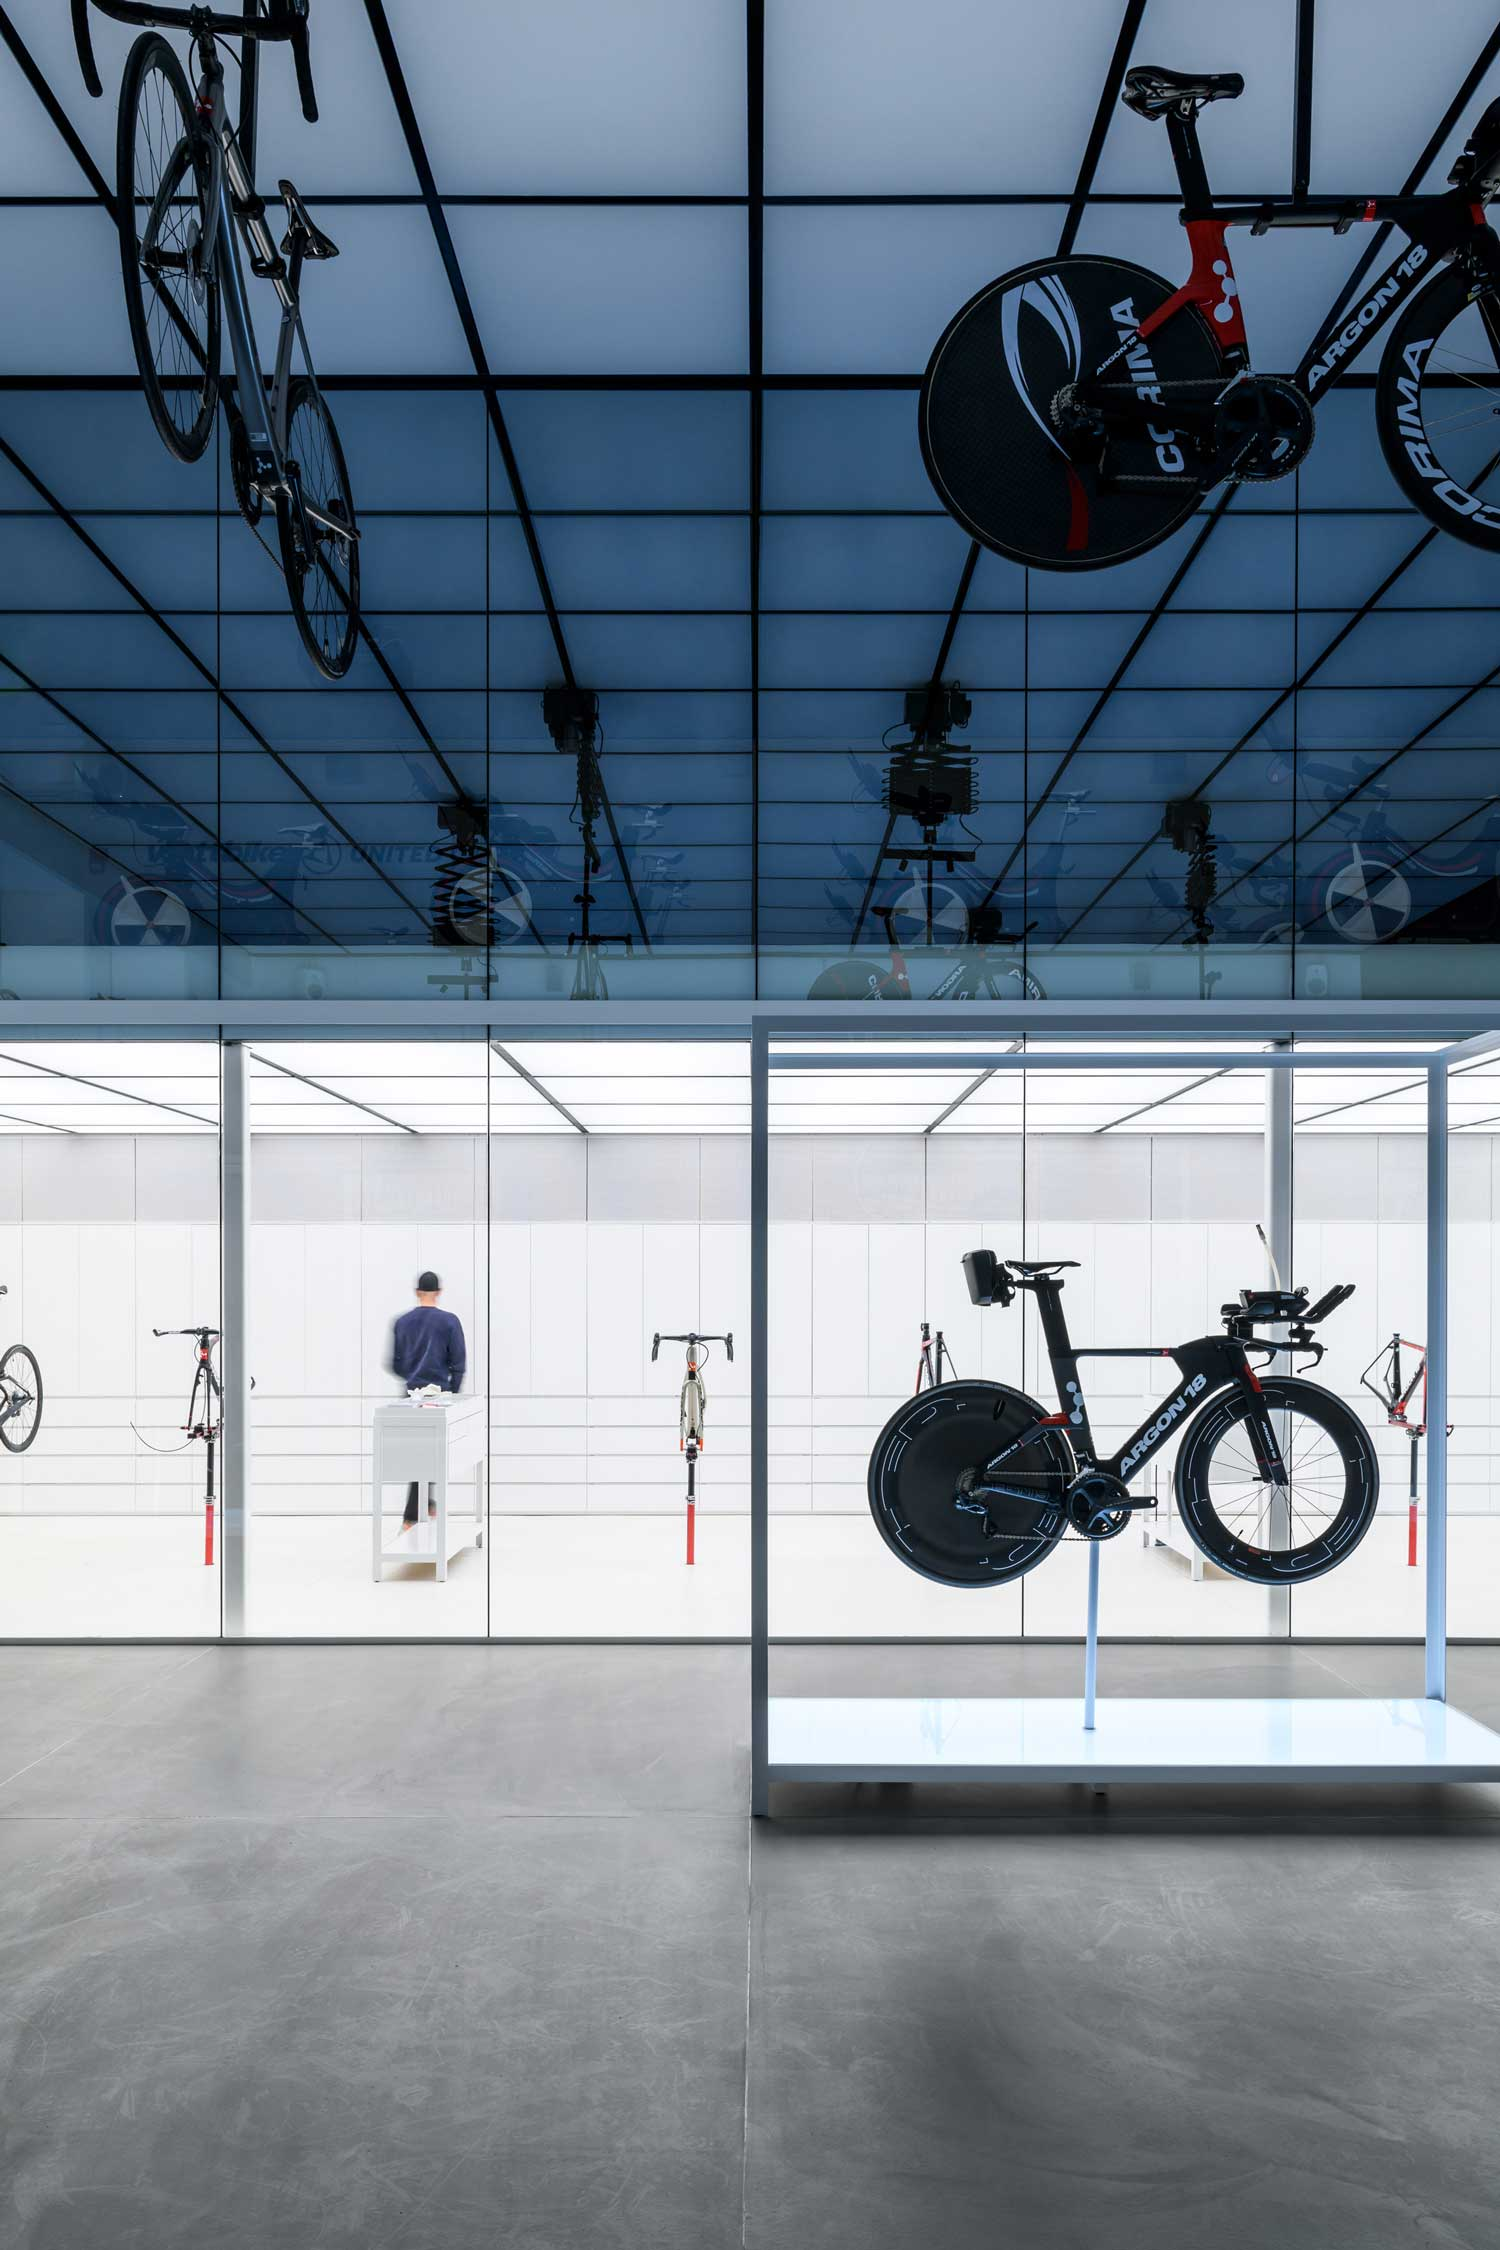 United Cycling LAB & Store in Lynge, Denmark by Johannes Torpe.